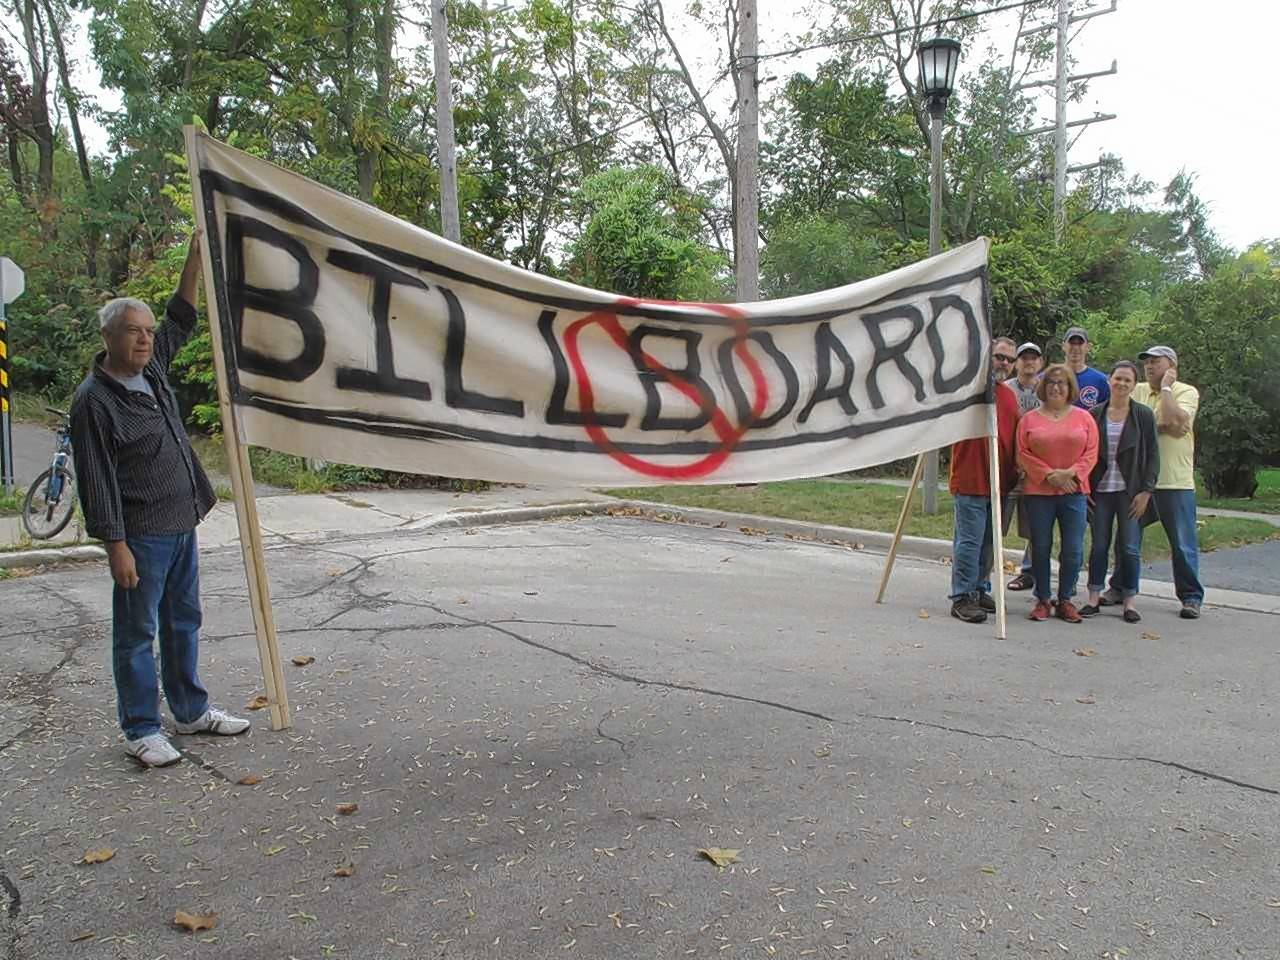 Lombard residents are fighting plans to install lighted billboards on Glenbard Wastewater Authority property, the source of a controversy that flared in the past week.